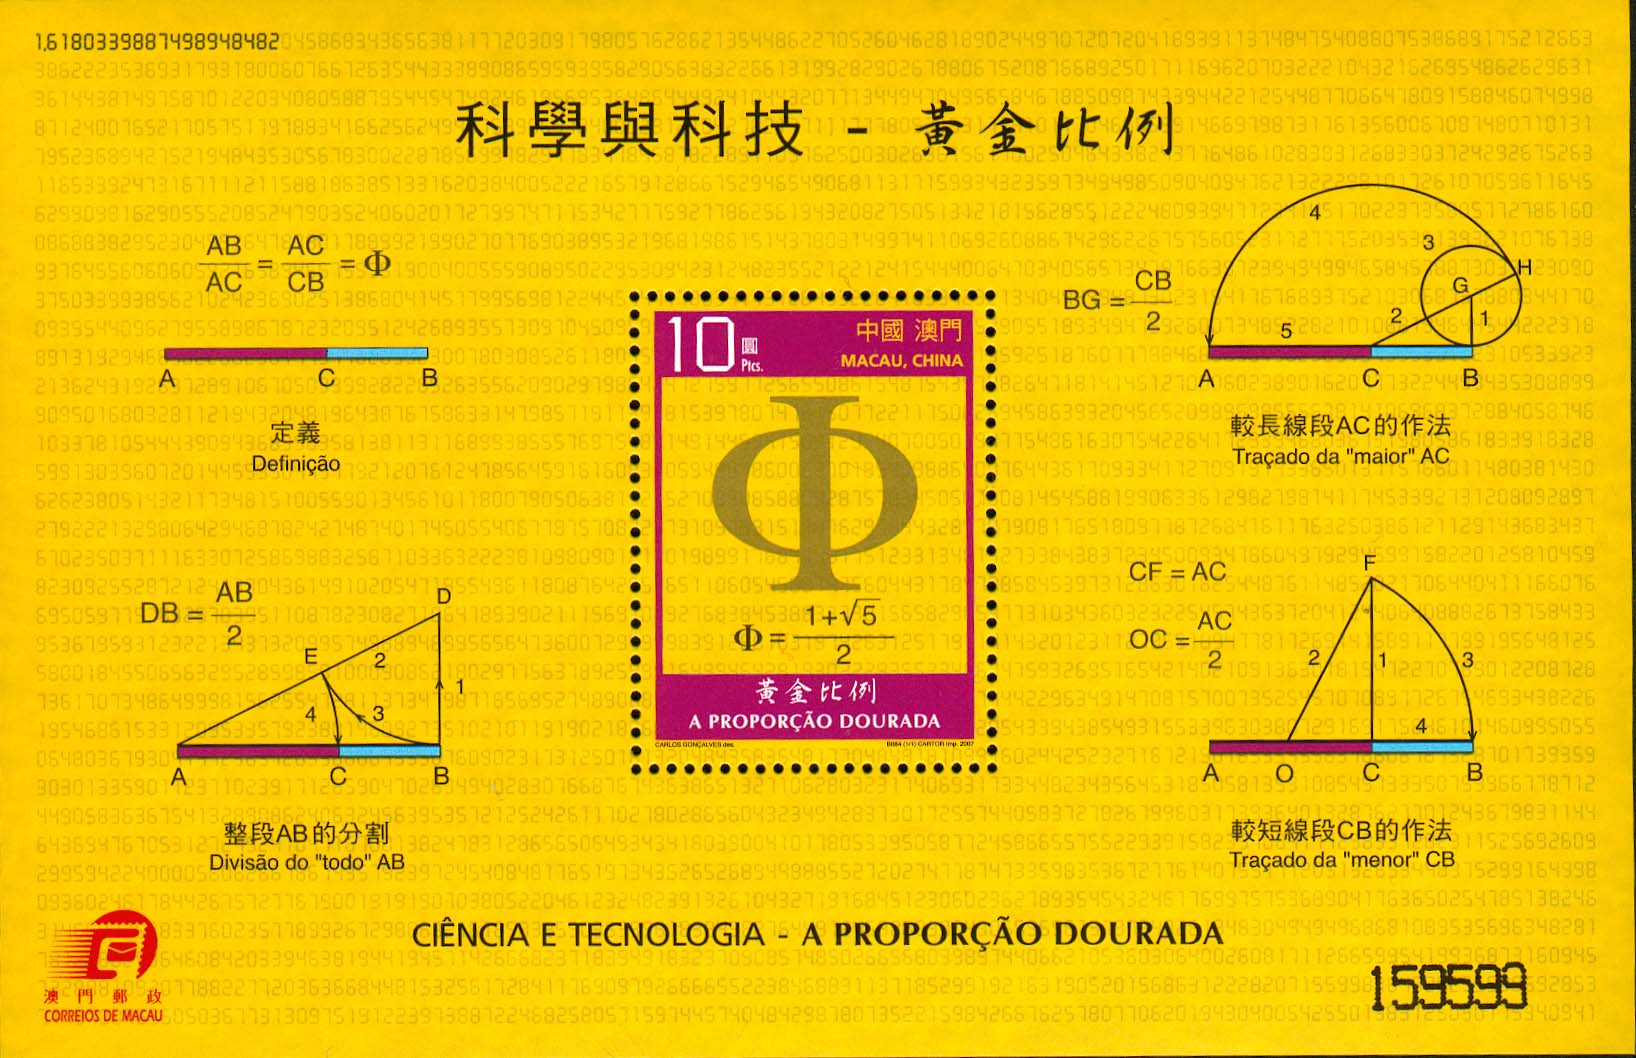 Poster design golden ratio - Stamp Macau China Phi Construction